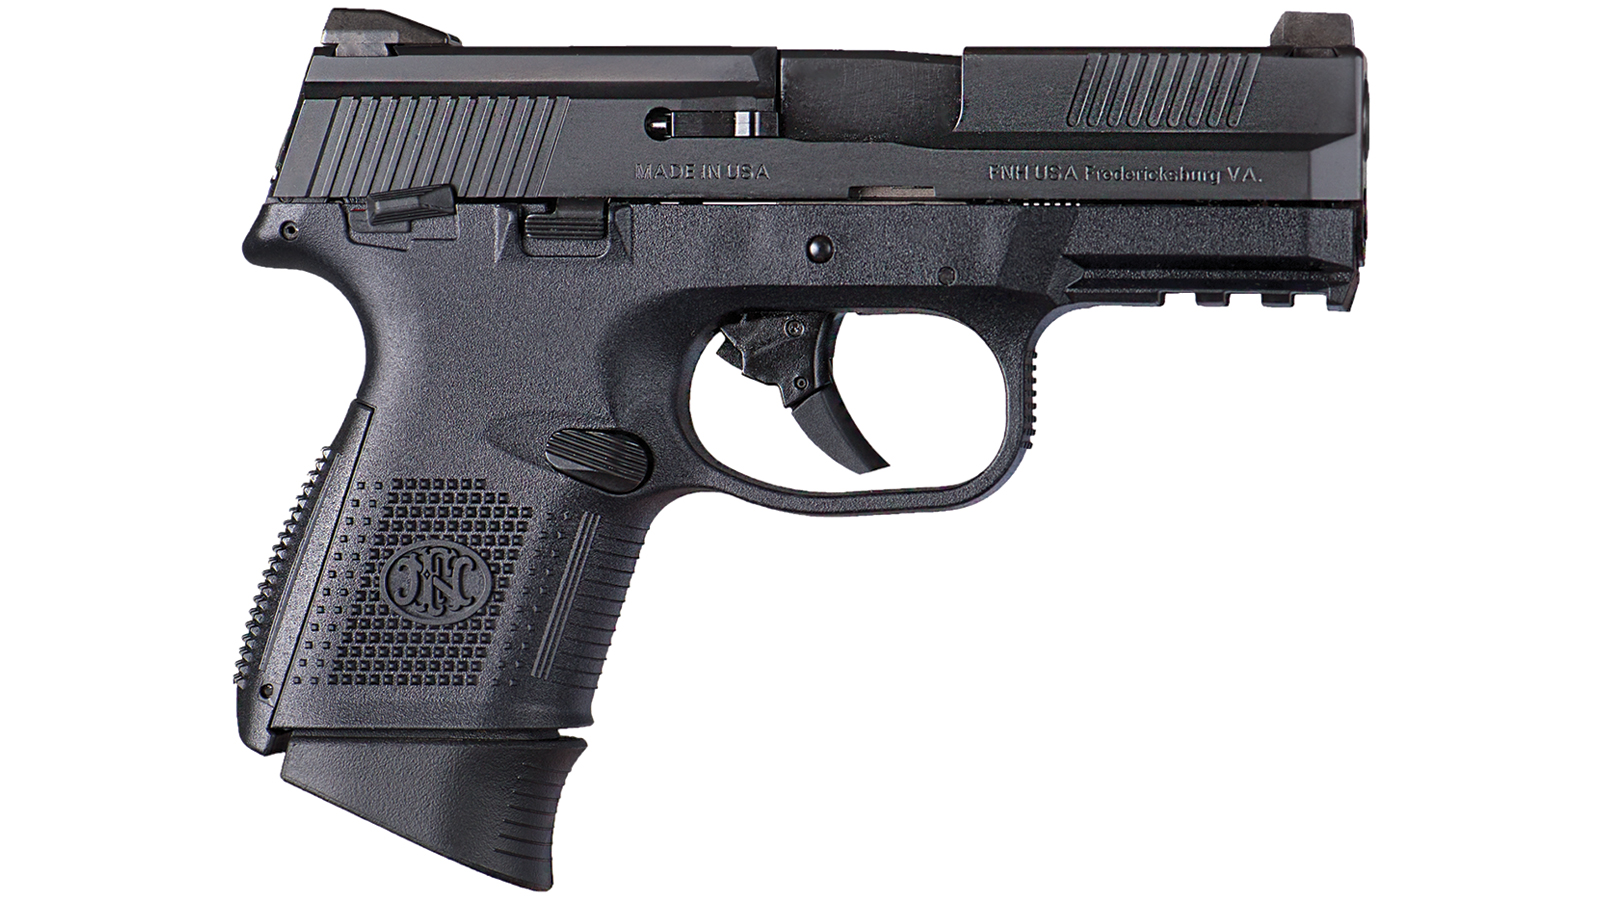 FN 66694 FNS 9 Compact Double 9mm 3.6 MS 10+1 Polymer Grip|Frame Black Stainless Steel in.